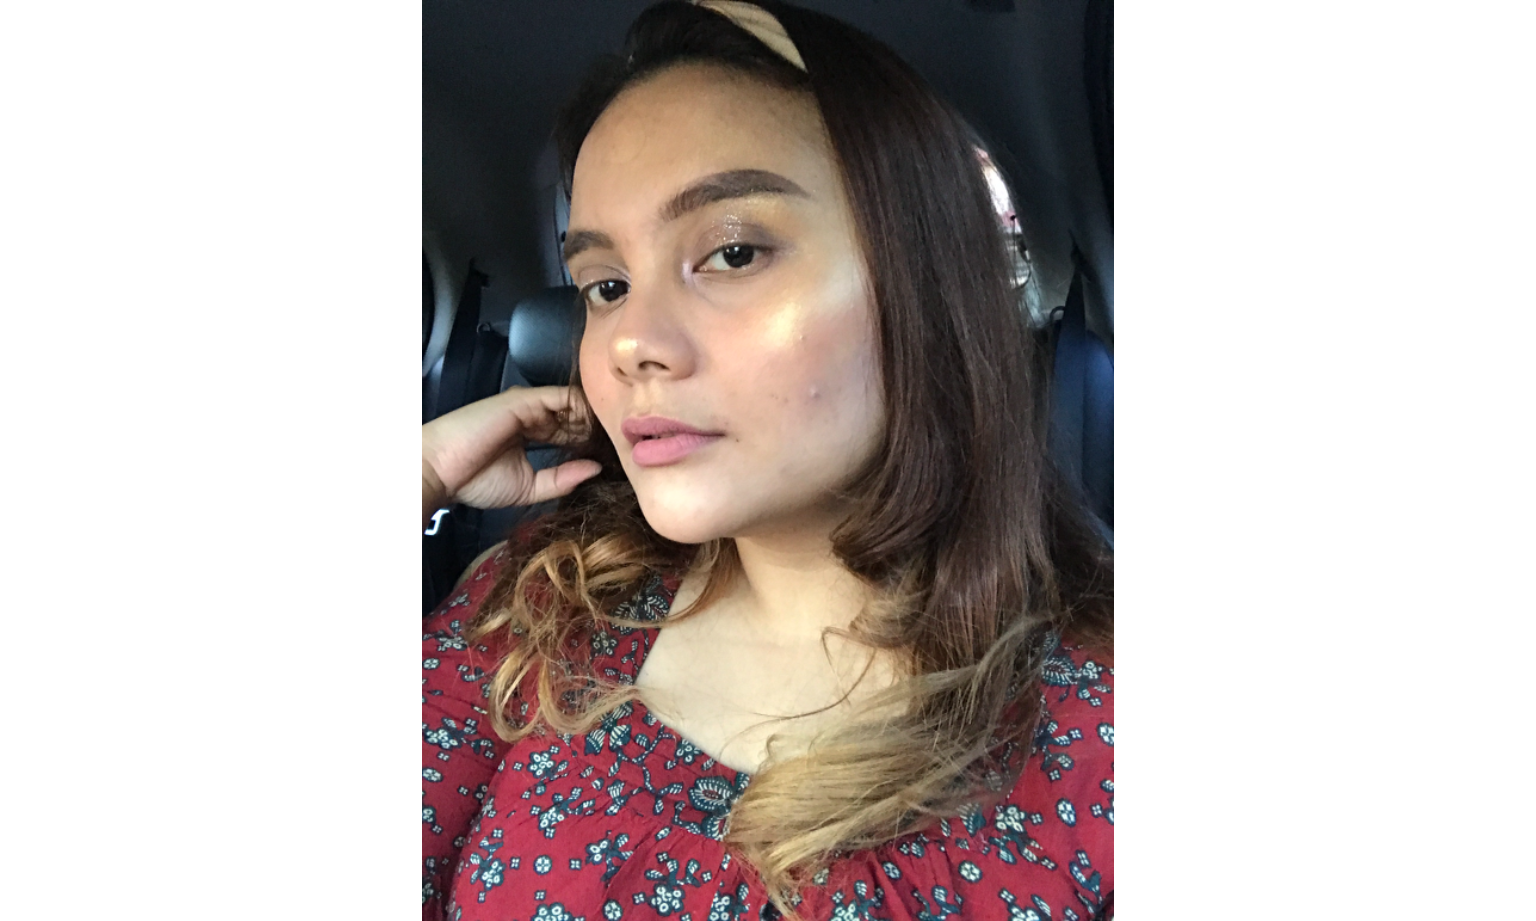 Goban Highlighter